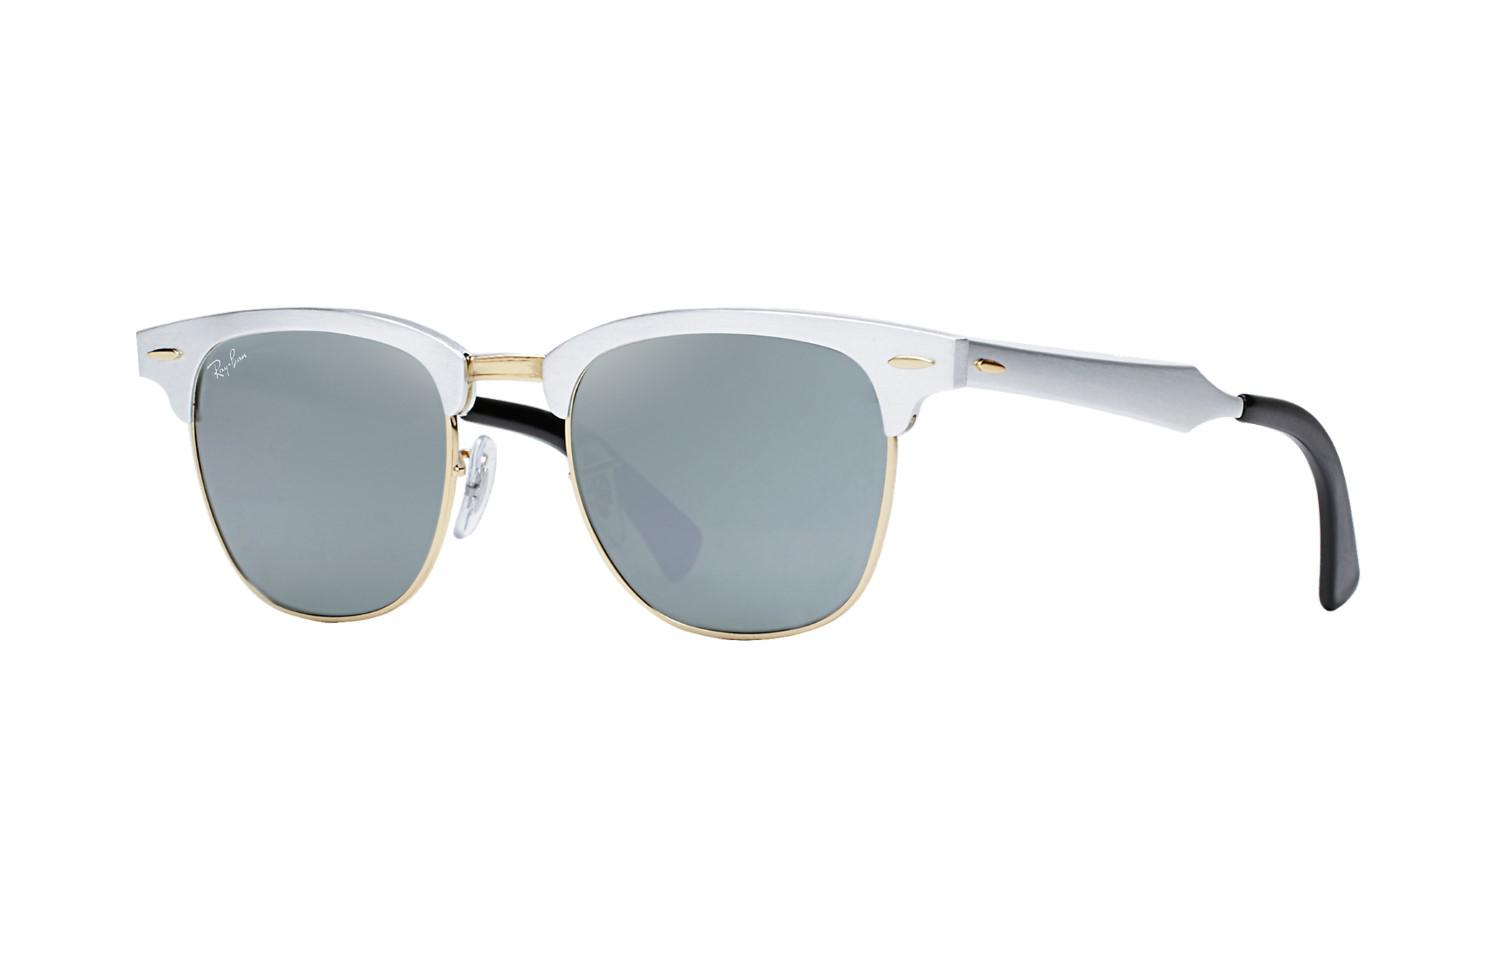 56a08c9404 Gallery. Previously sold at  Jet.com · Women s Clubmaster Sunglasses  Women s Ray Ban ...